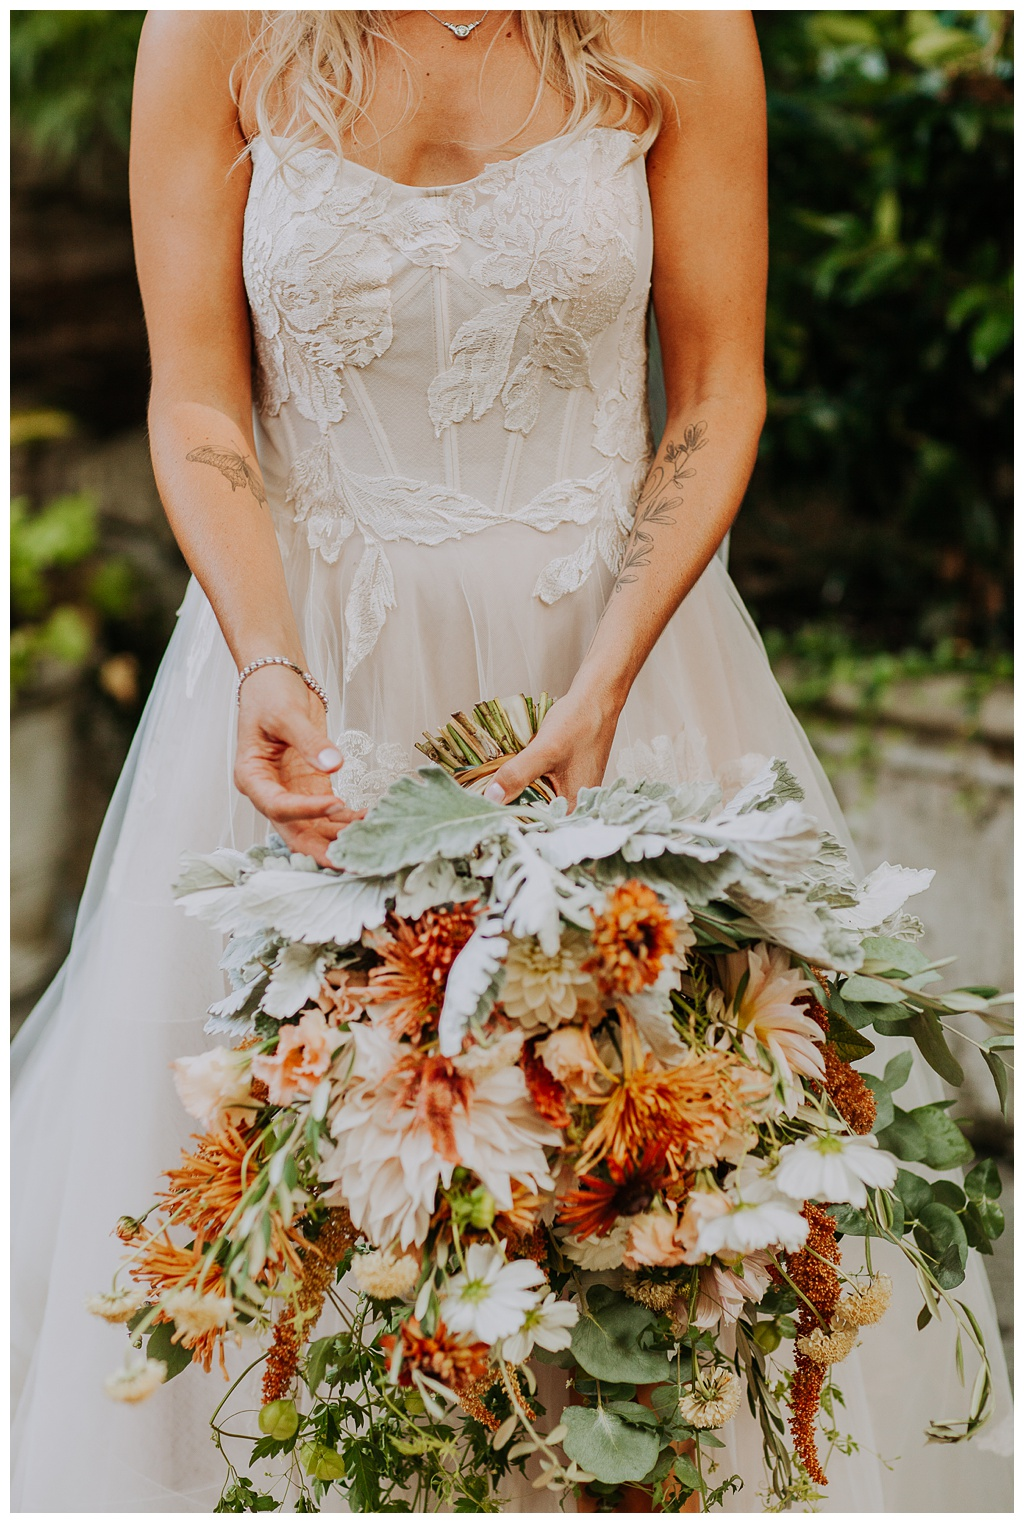 the bride holding her bridal bouquet, made of local and seasonal boho wedding flowers